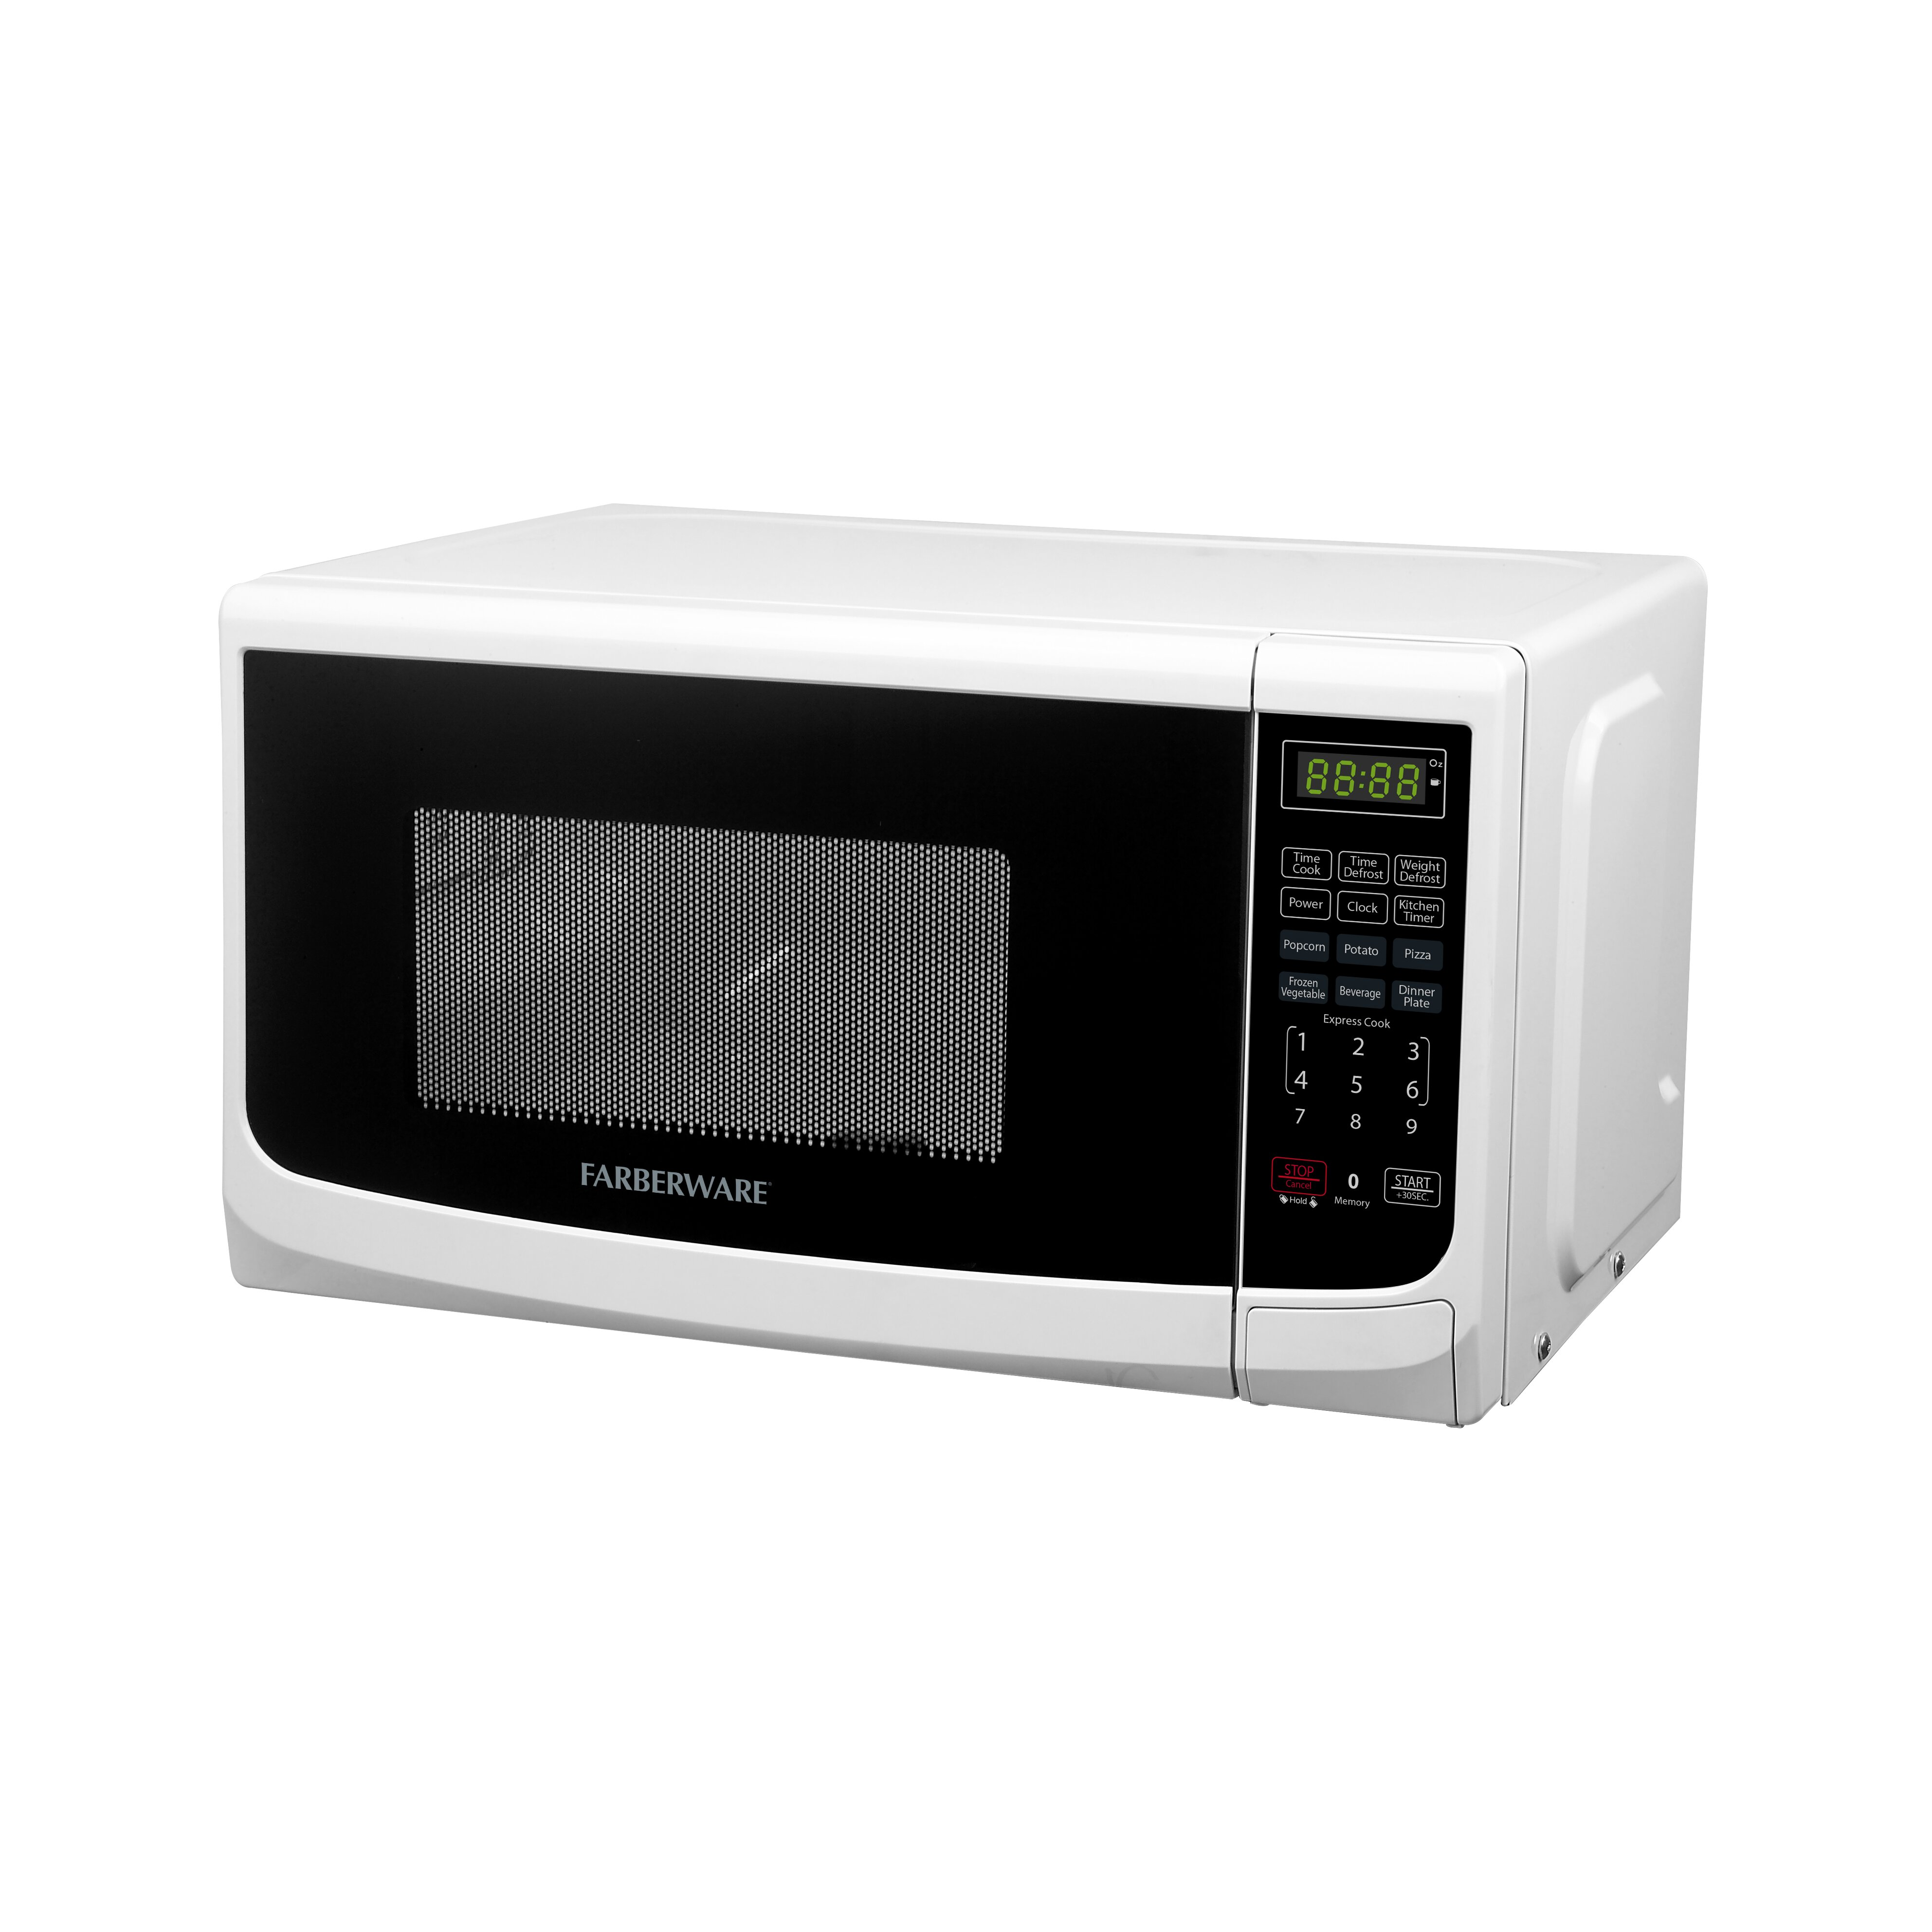 Classic 0.7 Cu. Ft. 700W Countertop Microwave Oven by Farberware